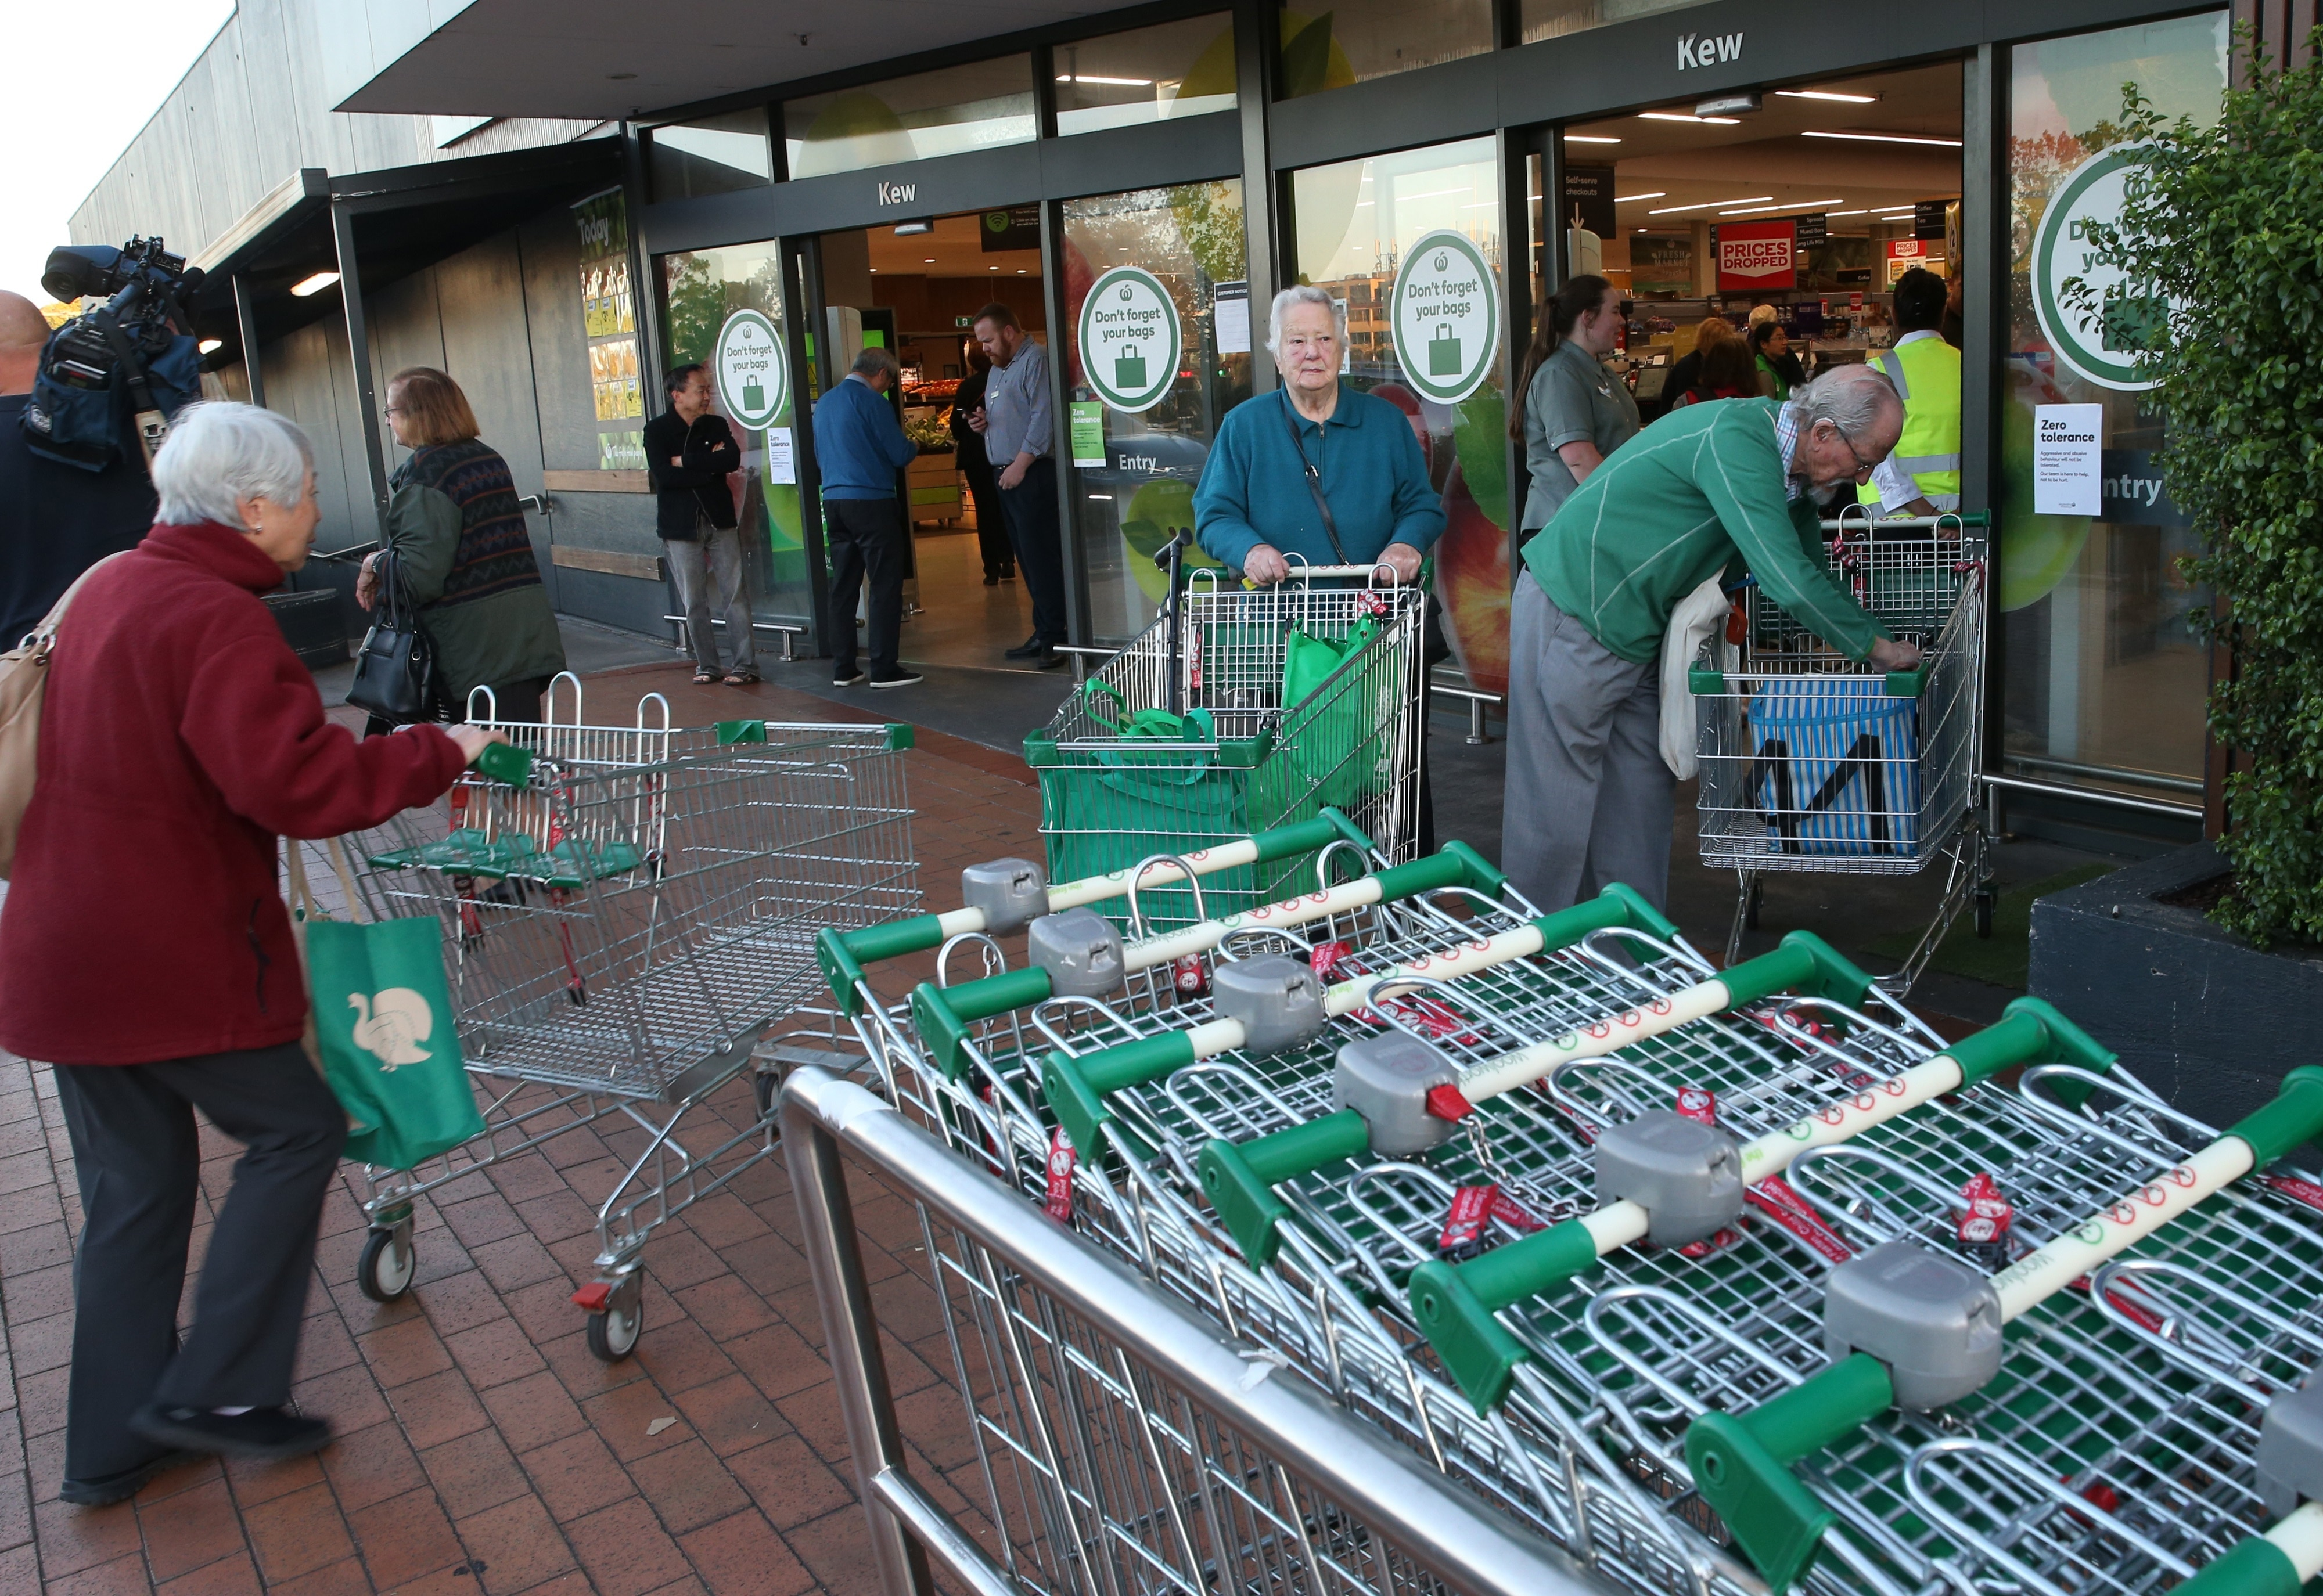 Woolworths opens it doors at Kew in Melbourne from 7am to 8am for the elderly to do their shopping.